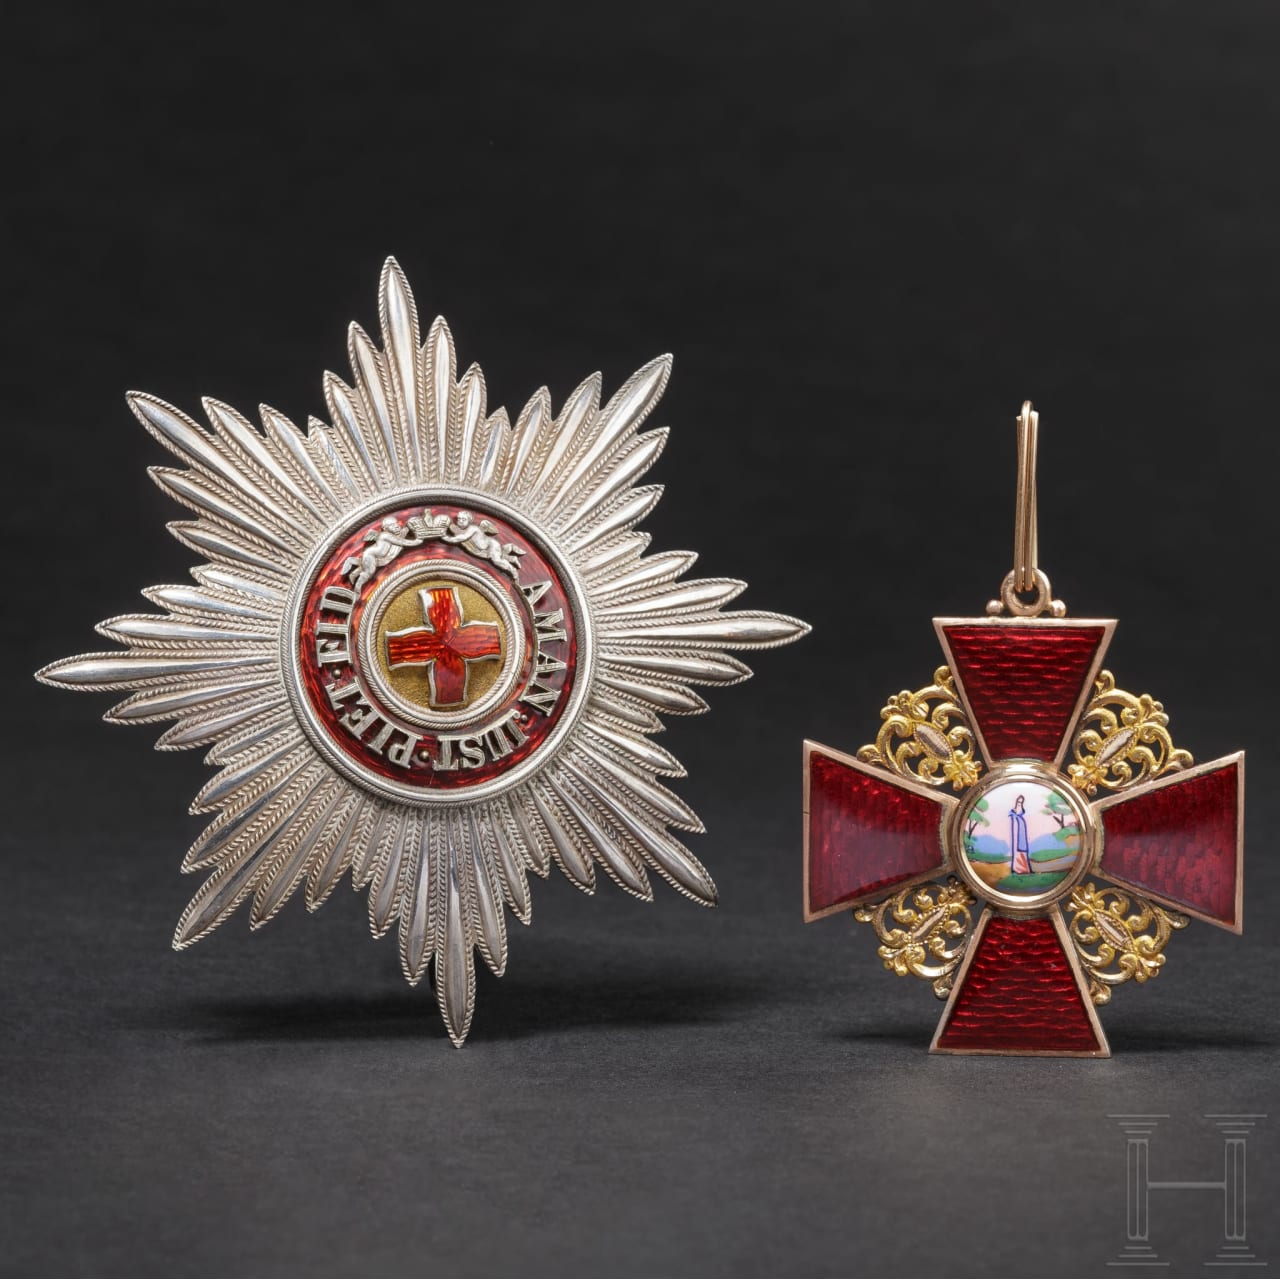 A Russian order set of St. Anna – a cross 1st Ccass with breast star and sash, 2nd half of the 19th century